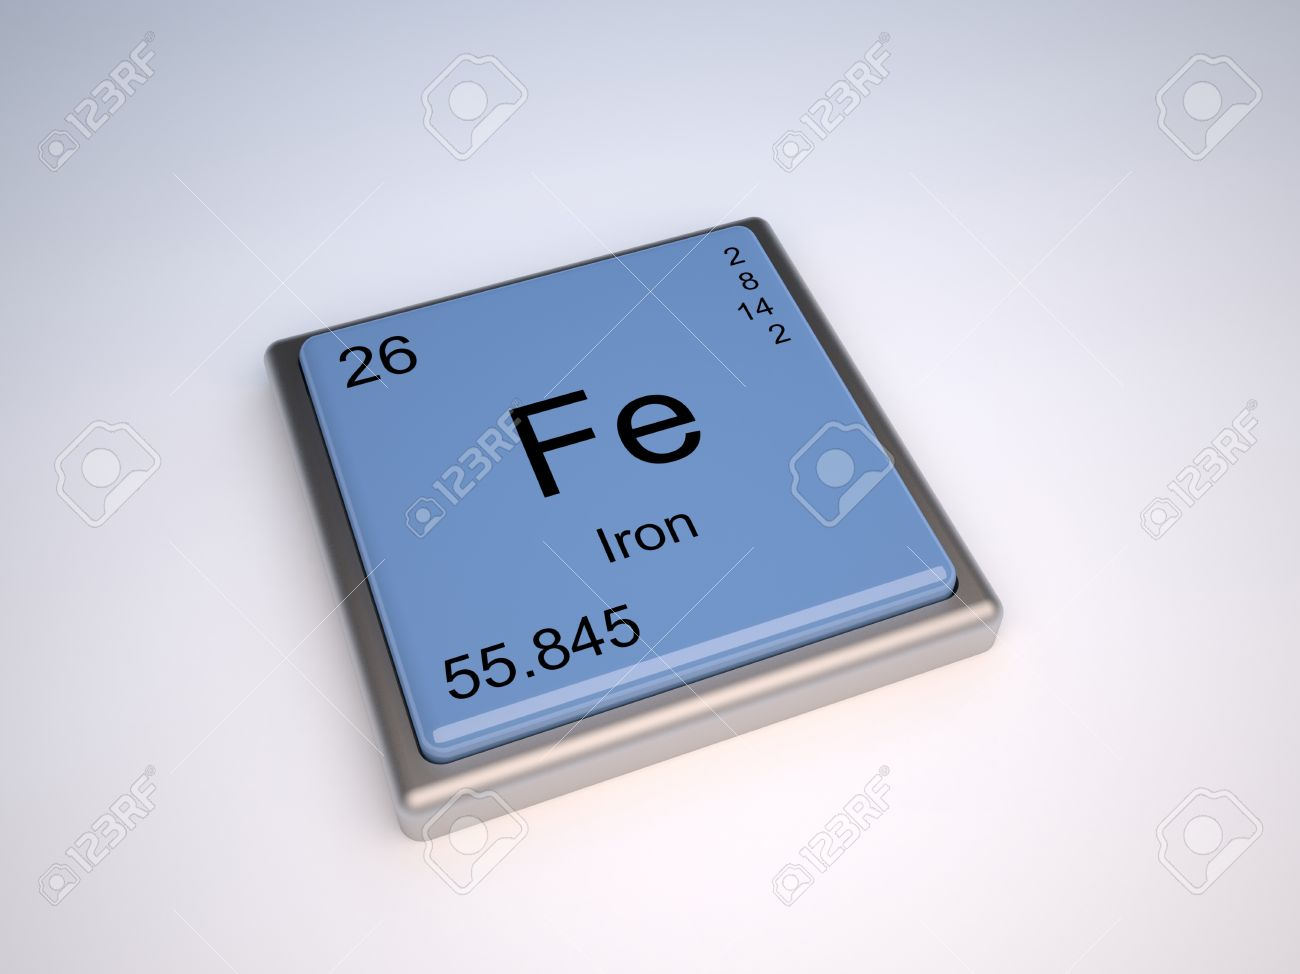 Iron chemical element of the periodic table with symbol fe stock iron chemical element of the periodic table with symbol fe stock photo 9257131 gamestrikefo Image collections